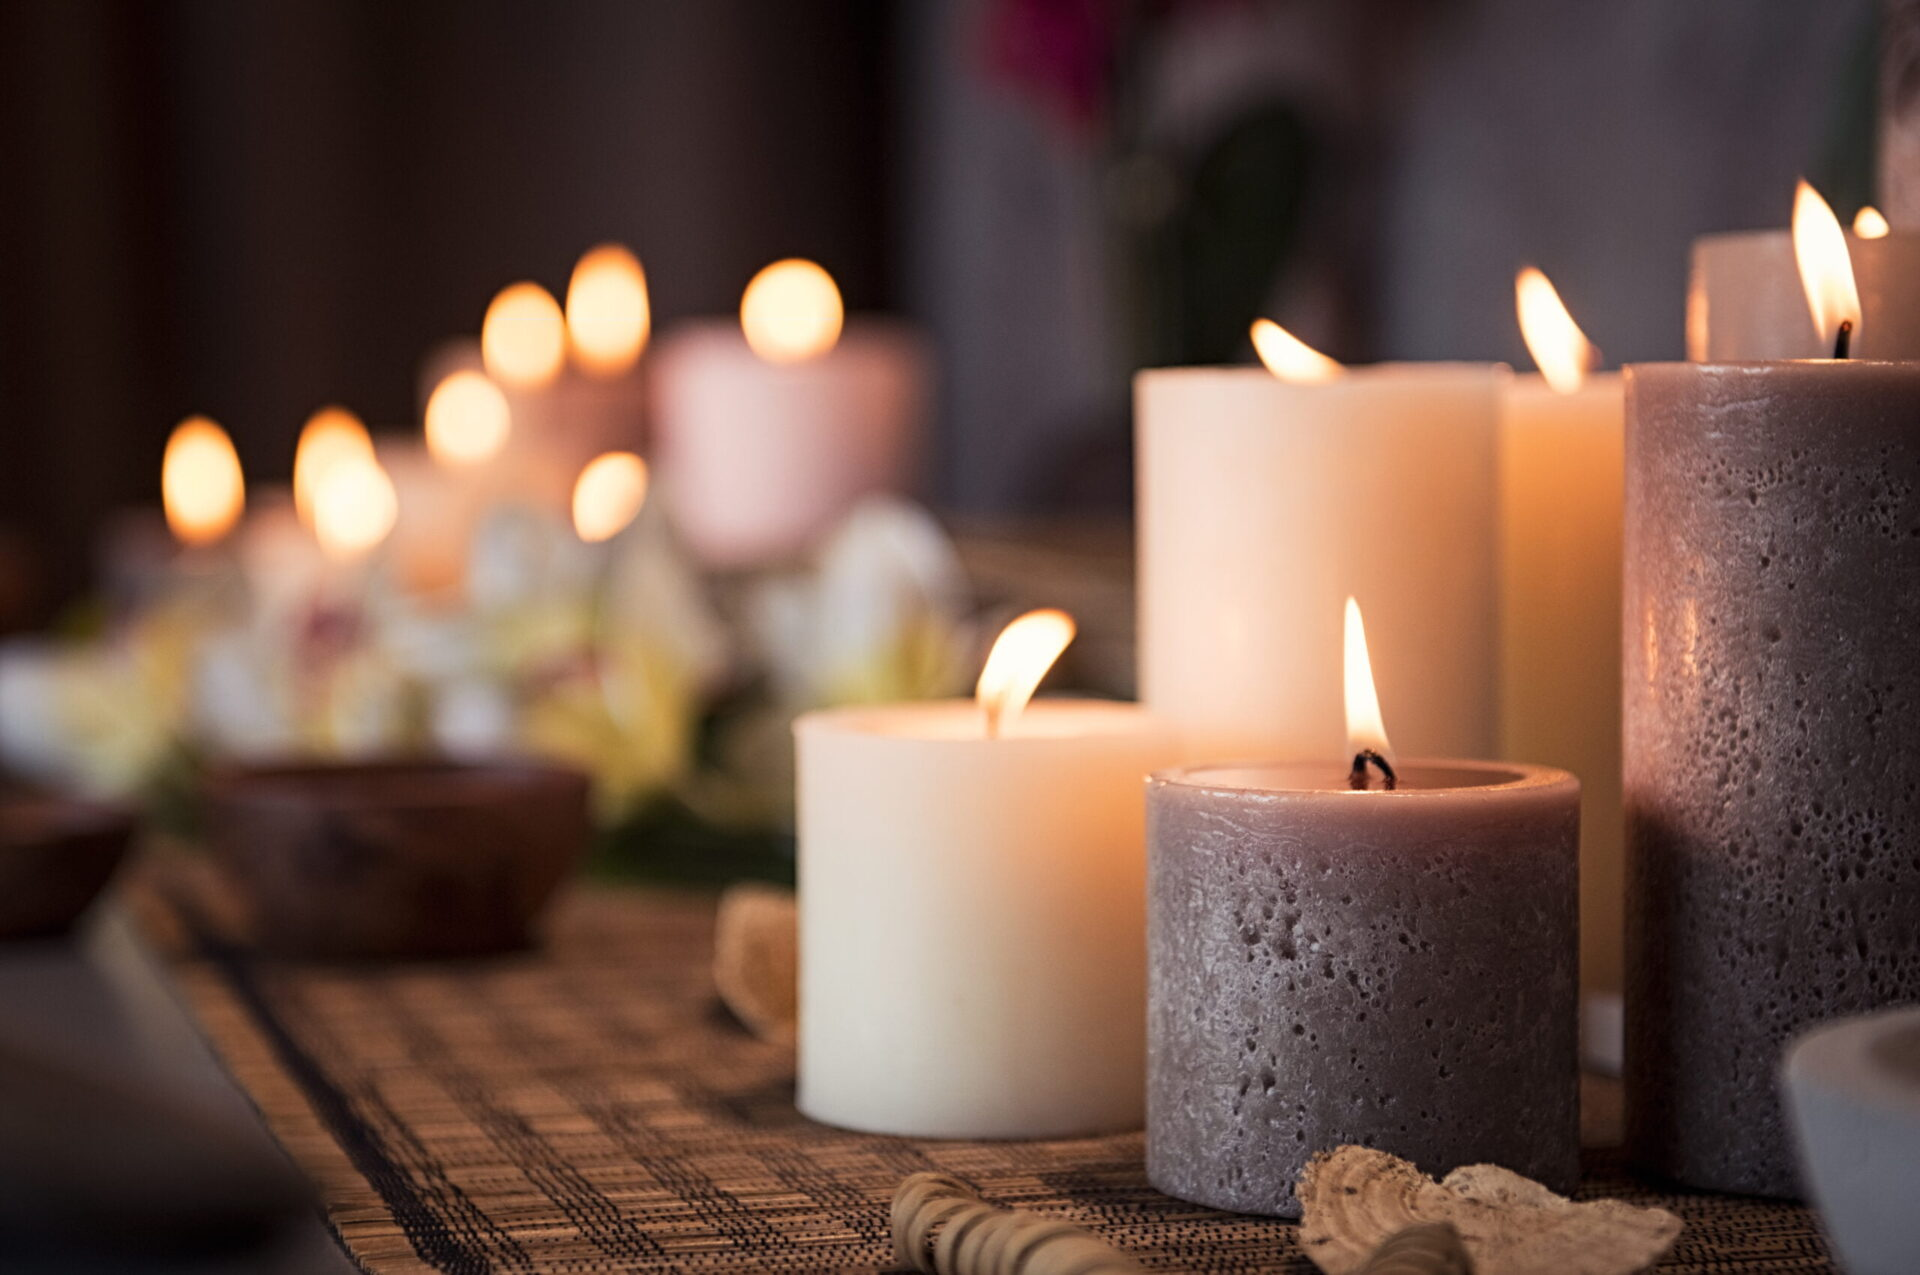 Closeup of burning candles spreading aroma on table in a spa room. Beautiful composition with grey and white candles for spa treatment